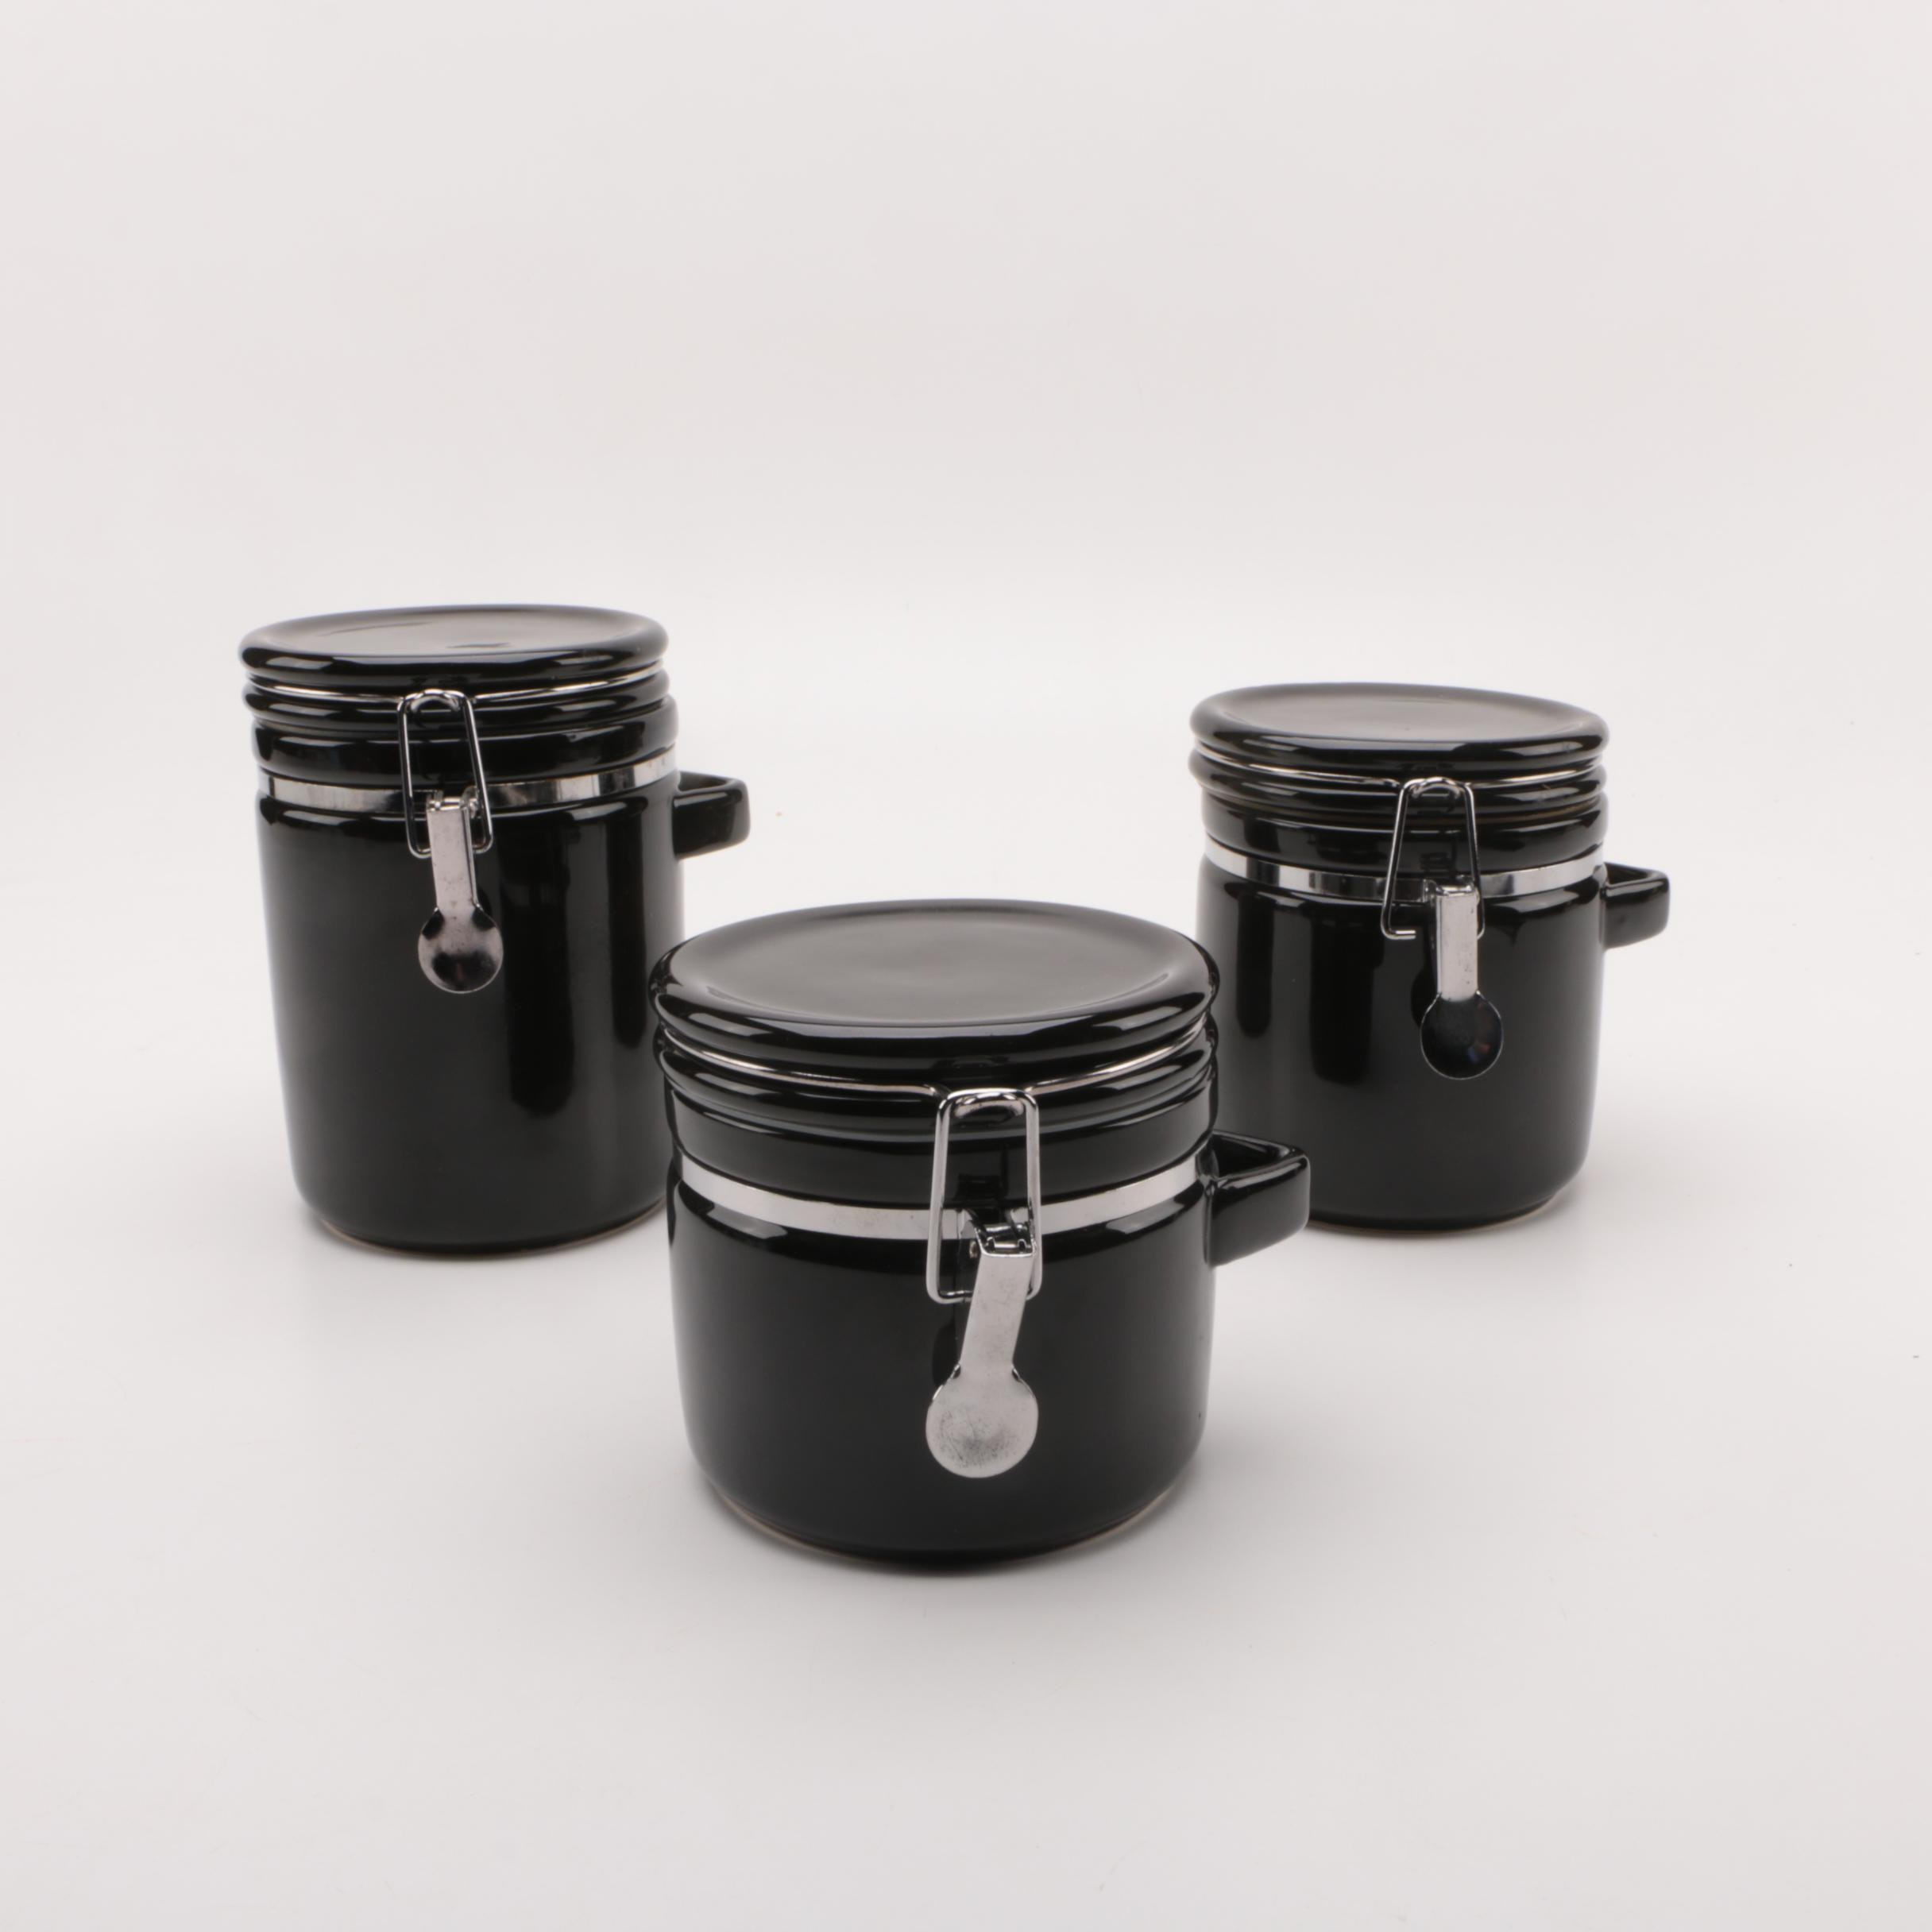 Three Ceramic Kitchen Canisters